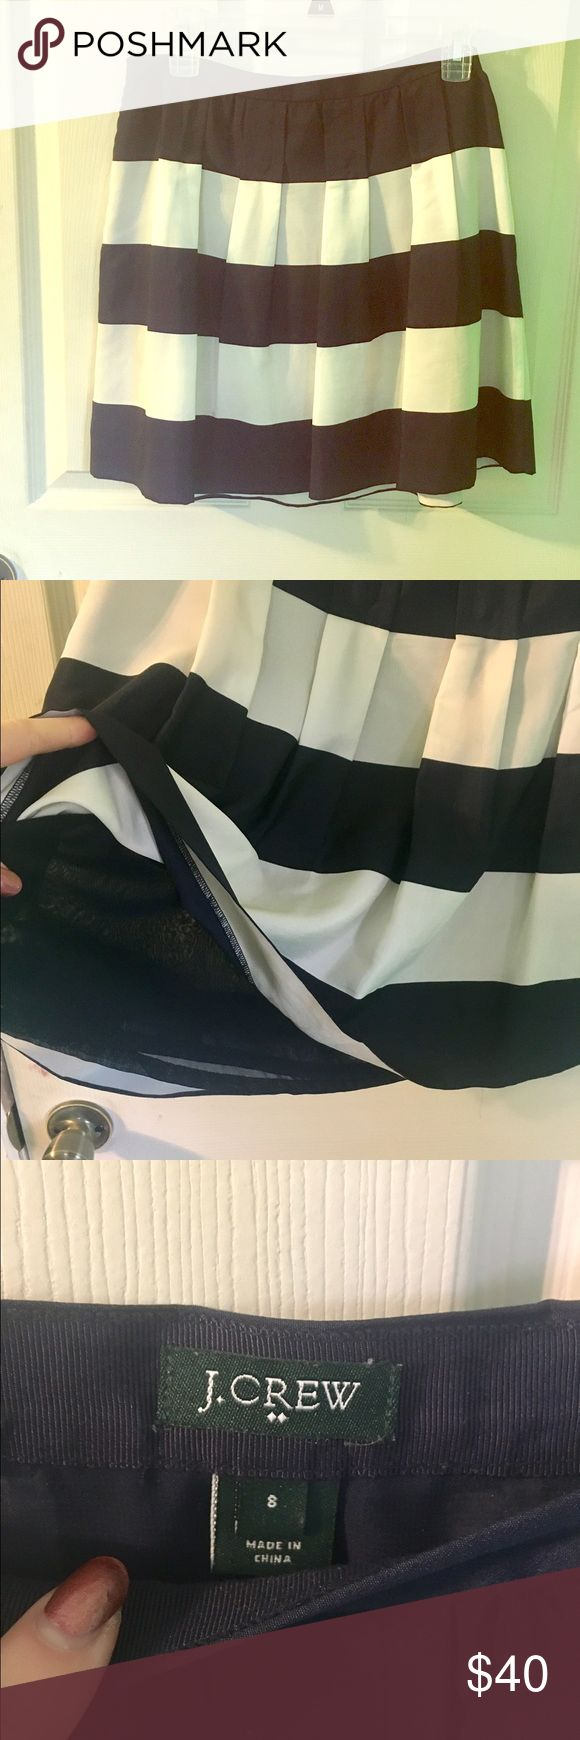 JCrew Nautical Skirt Adorable JCrew navy & white striped skirt. Size 8, great conditions. Zip up closure and side pockets. J. Crew Skirts